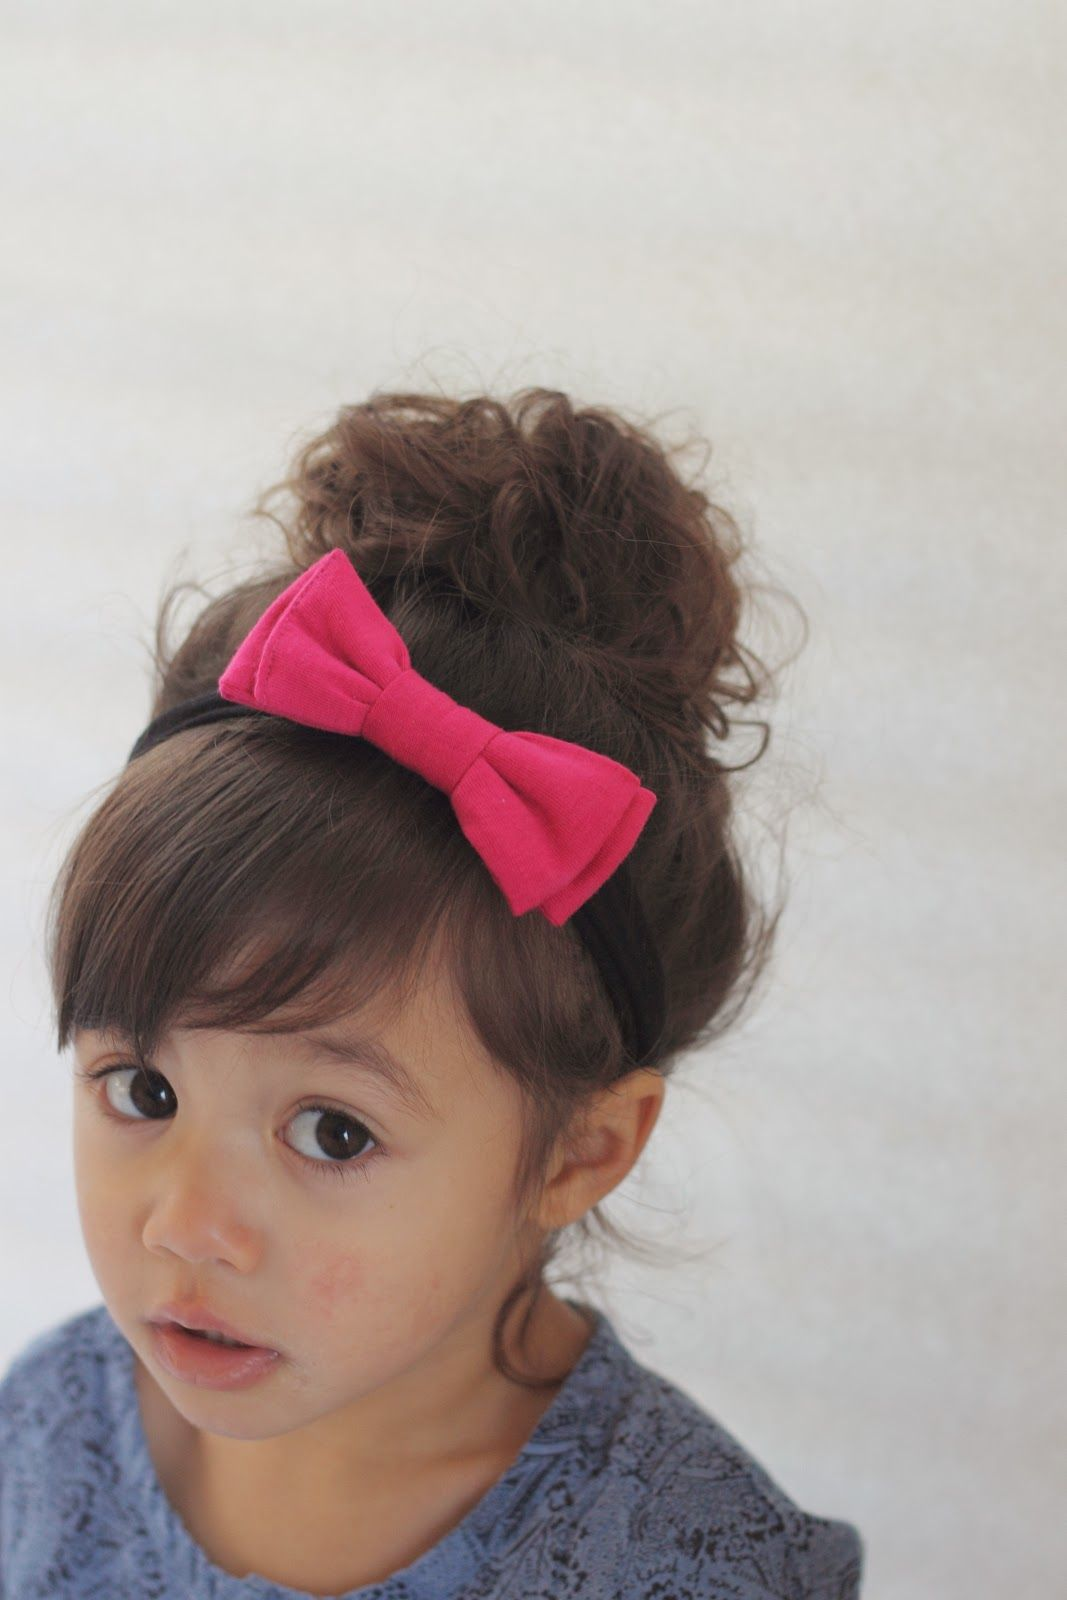 Braided Bangs Hairstyles 16 Toddler Hair Styles To Mix Up The Pony Tail And Simple Braids